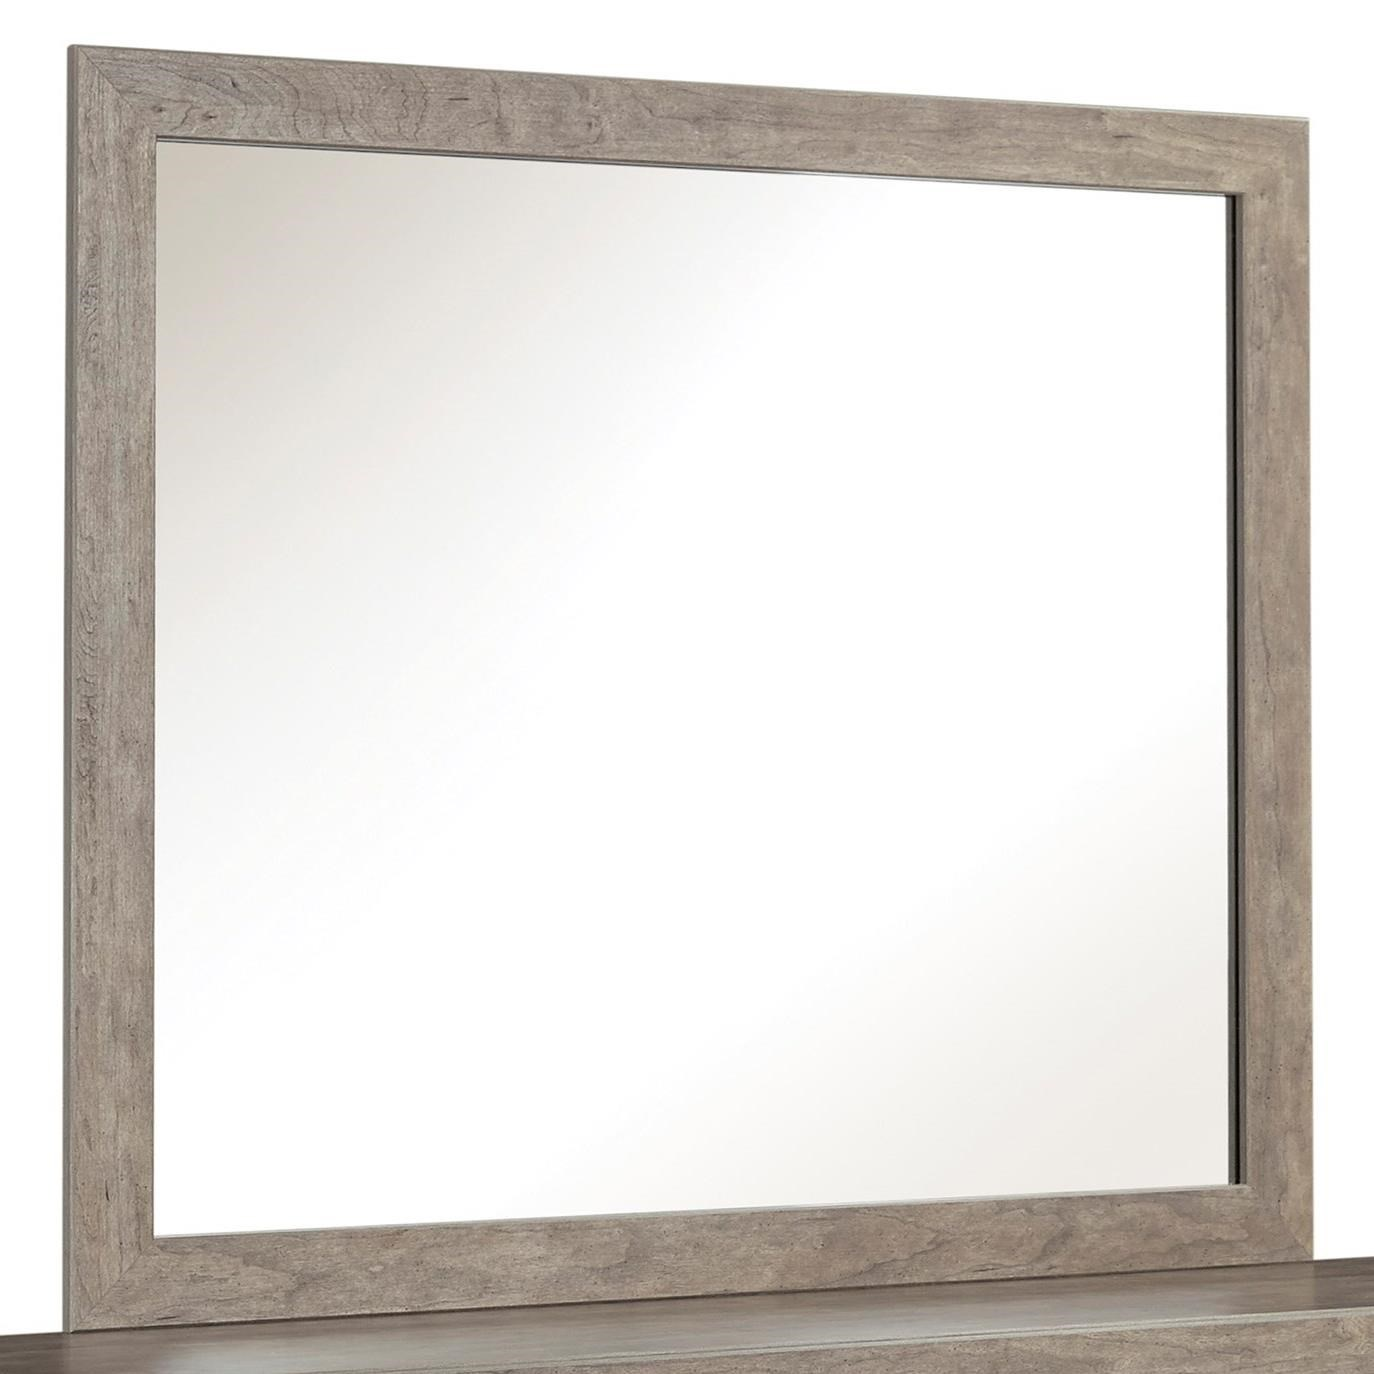 Culverbach Mirror by Signature Design by Ashley at Suburban Furniture